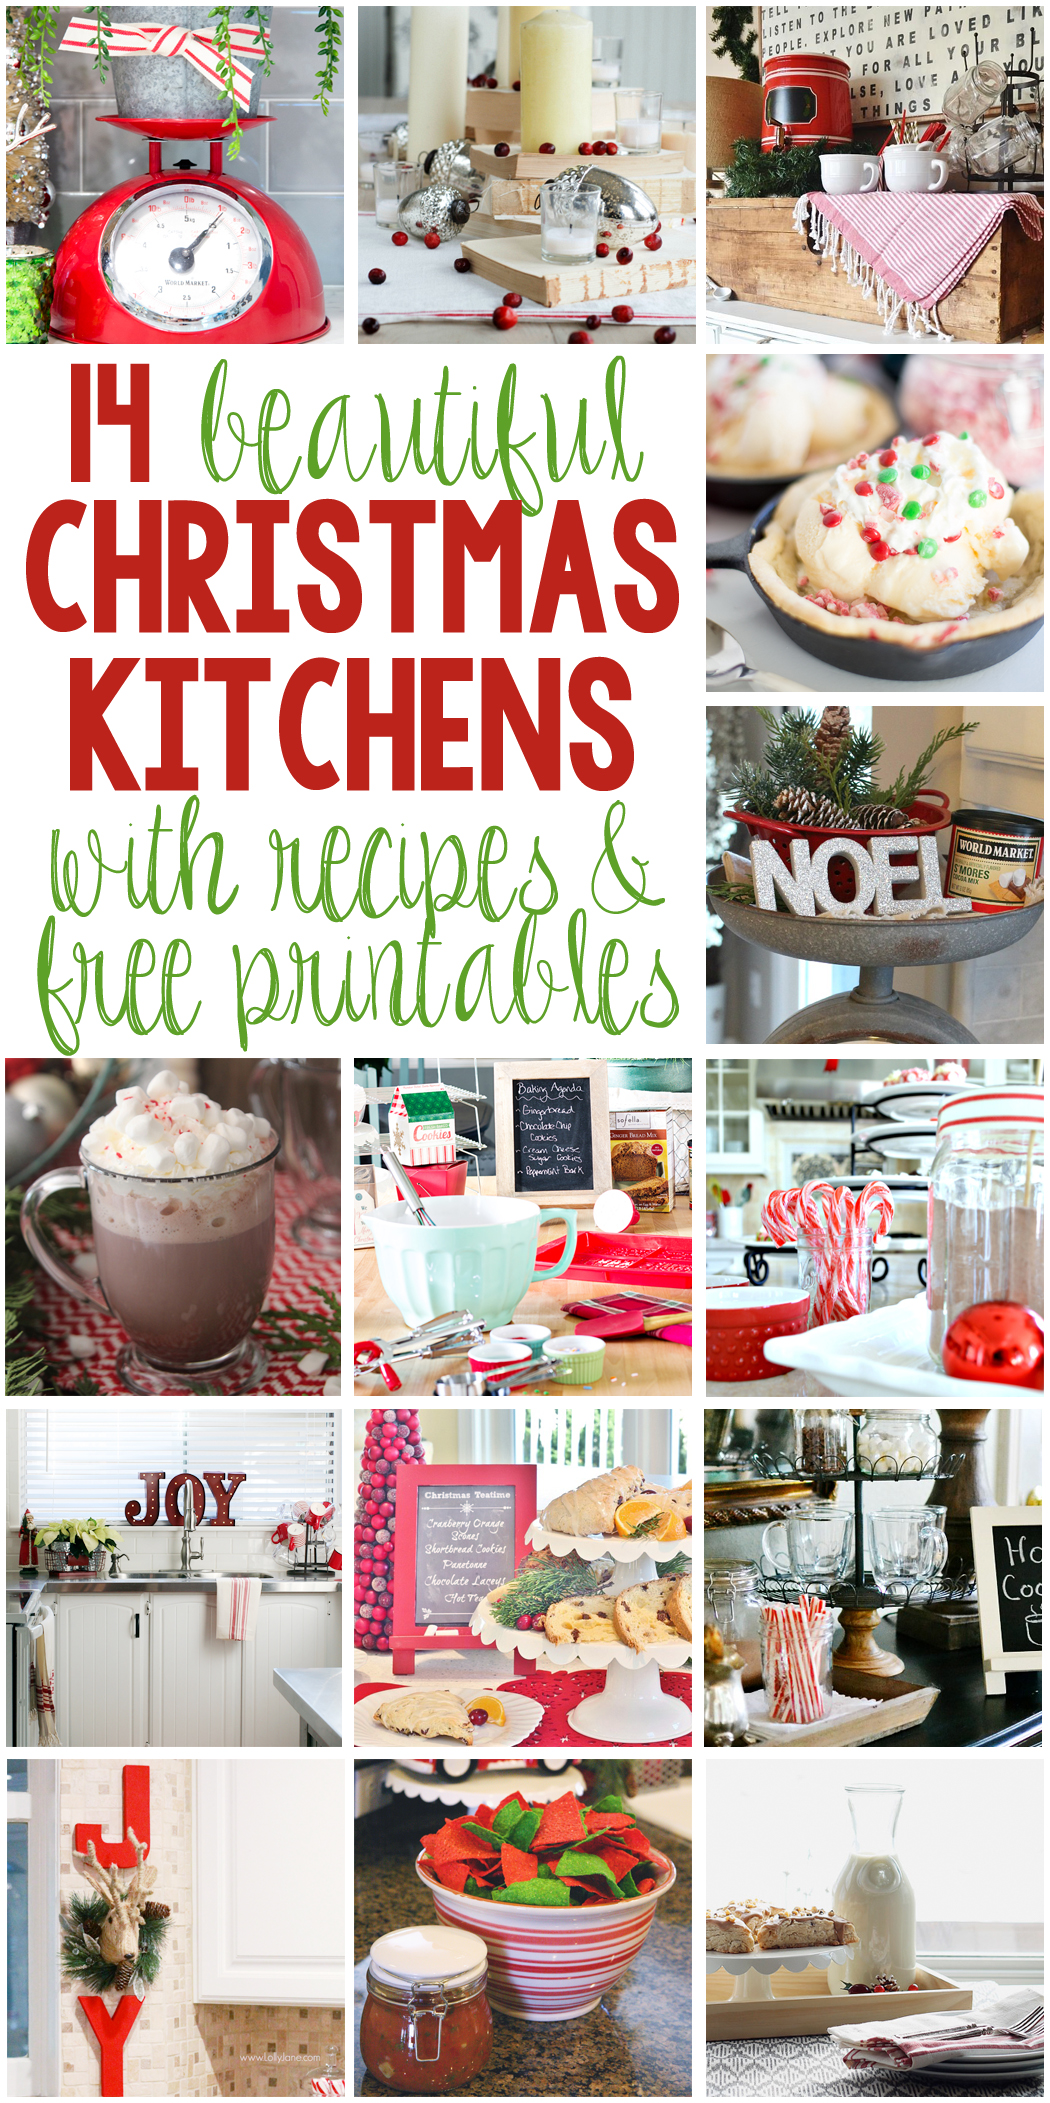 14 Beautiful Christmas Kitchens with Recipes and Free Printables - Get the details at LoveGrowsWild.com